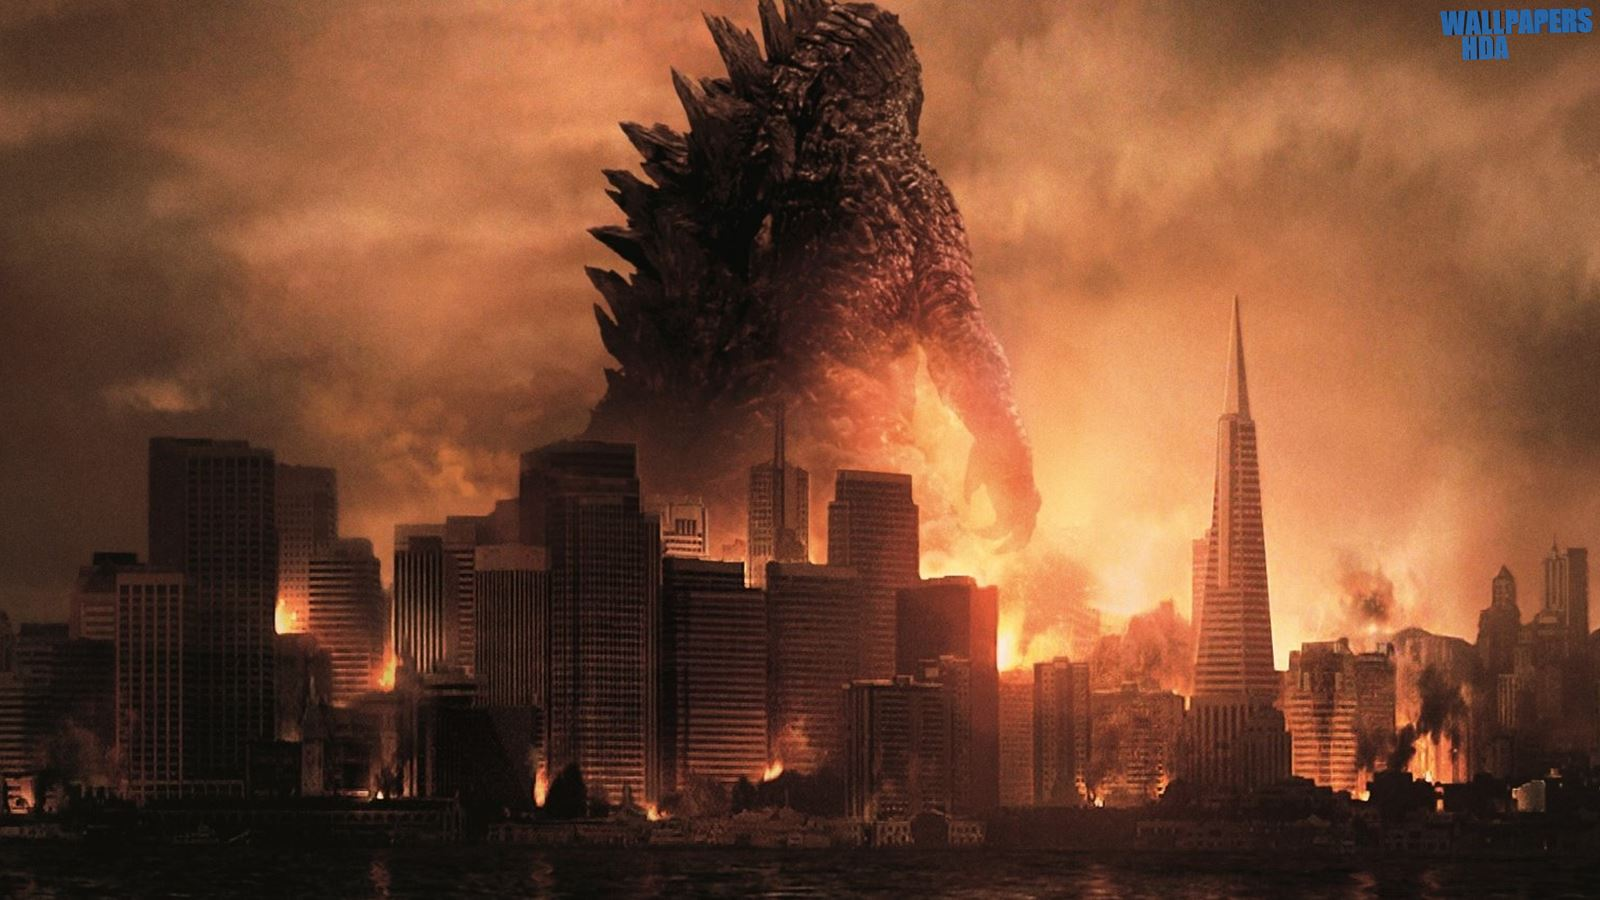 ... Wallpapers Fullscreen Widescreen Godzilla monsters wallpaper 1600×900